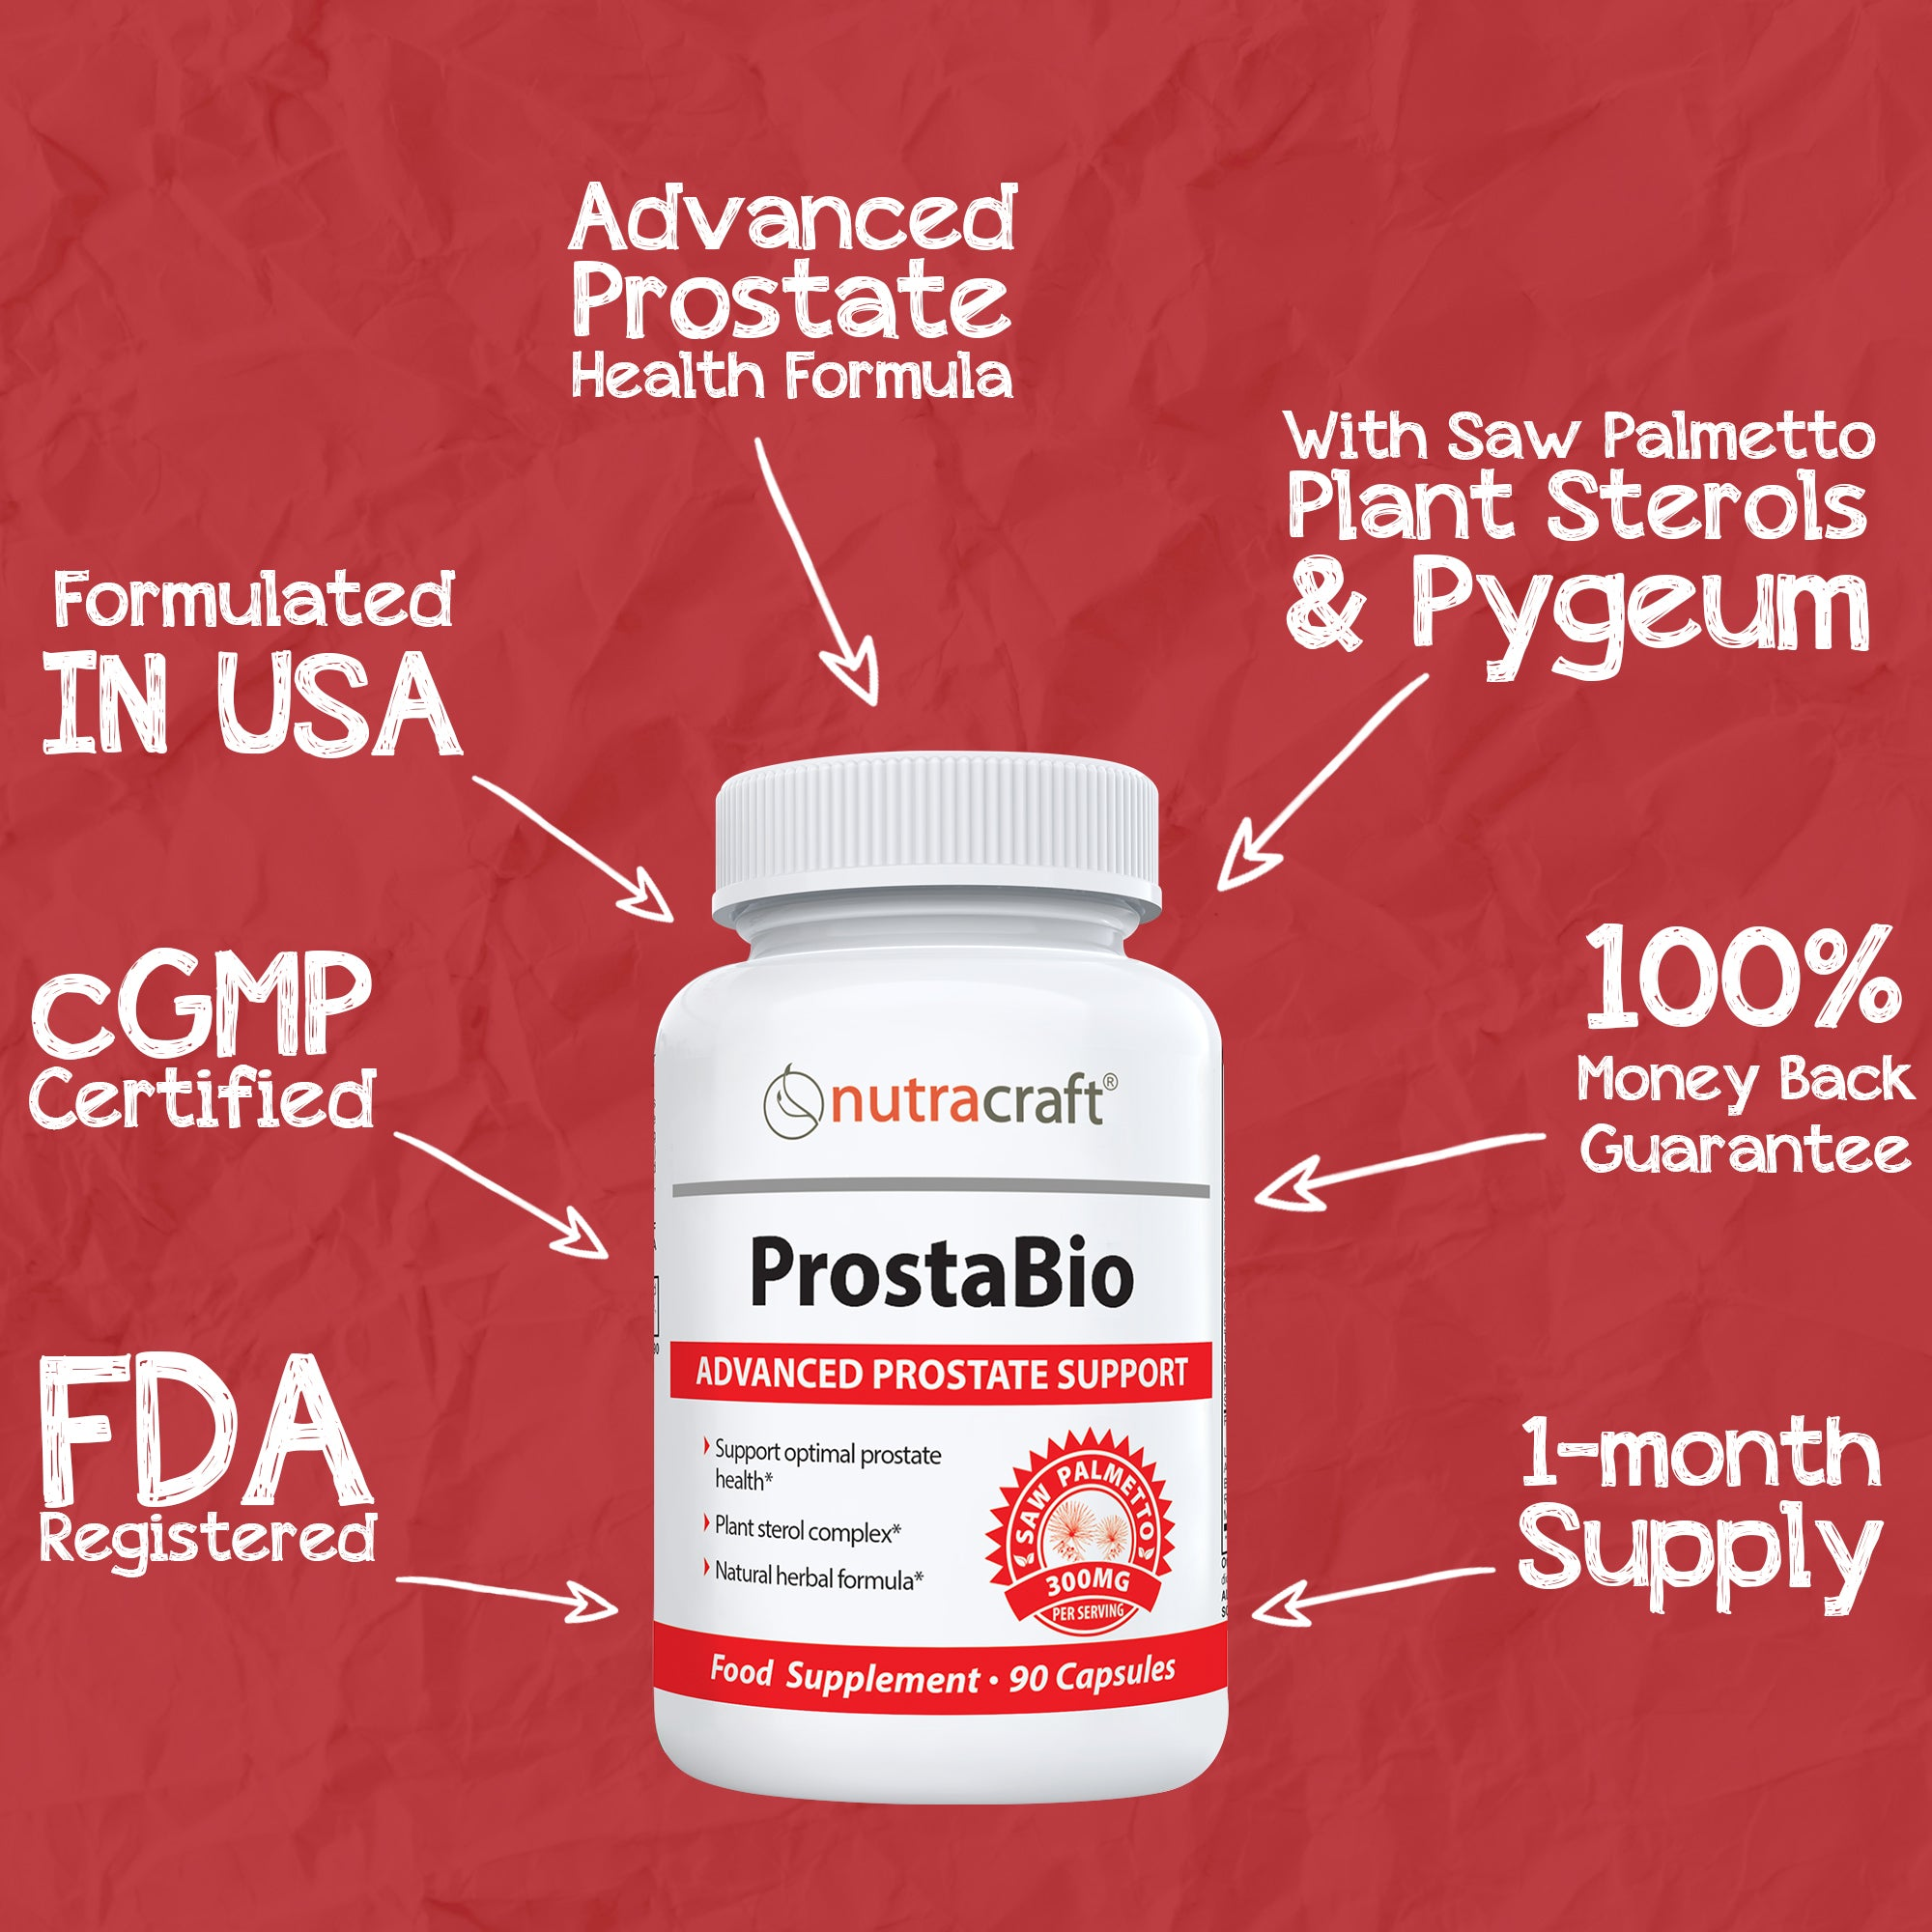 nutracraft-prostabio-seals